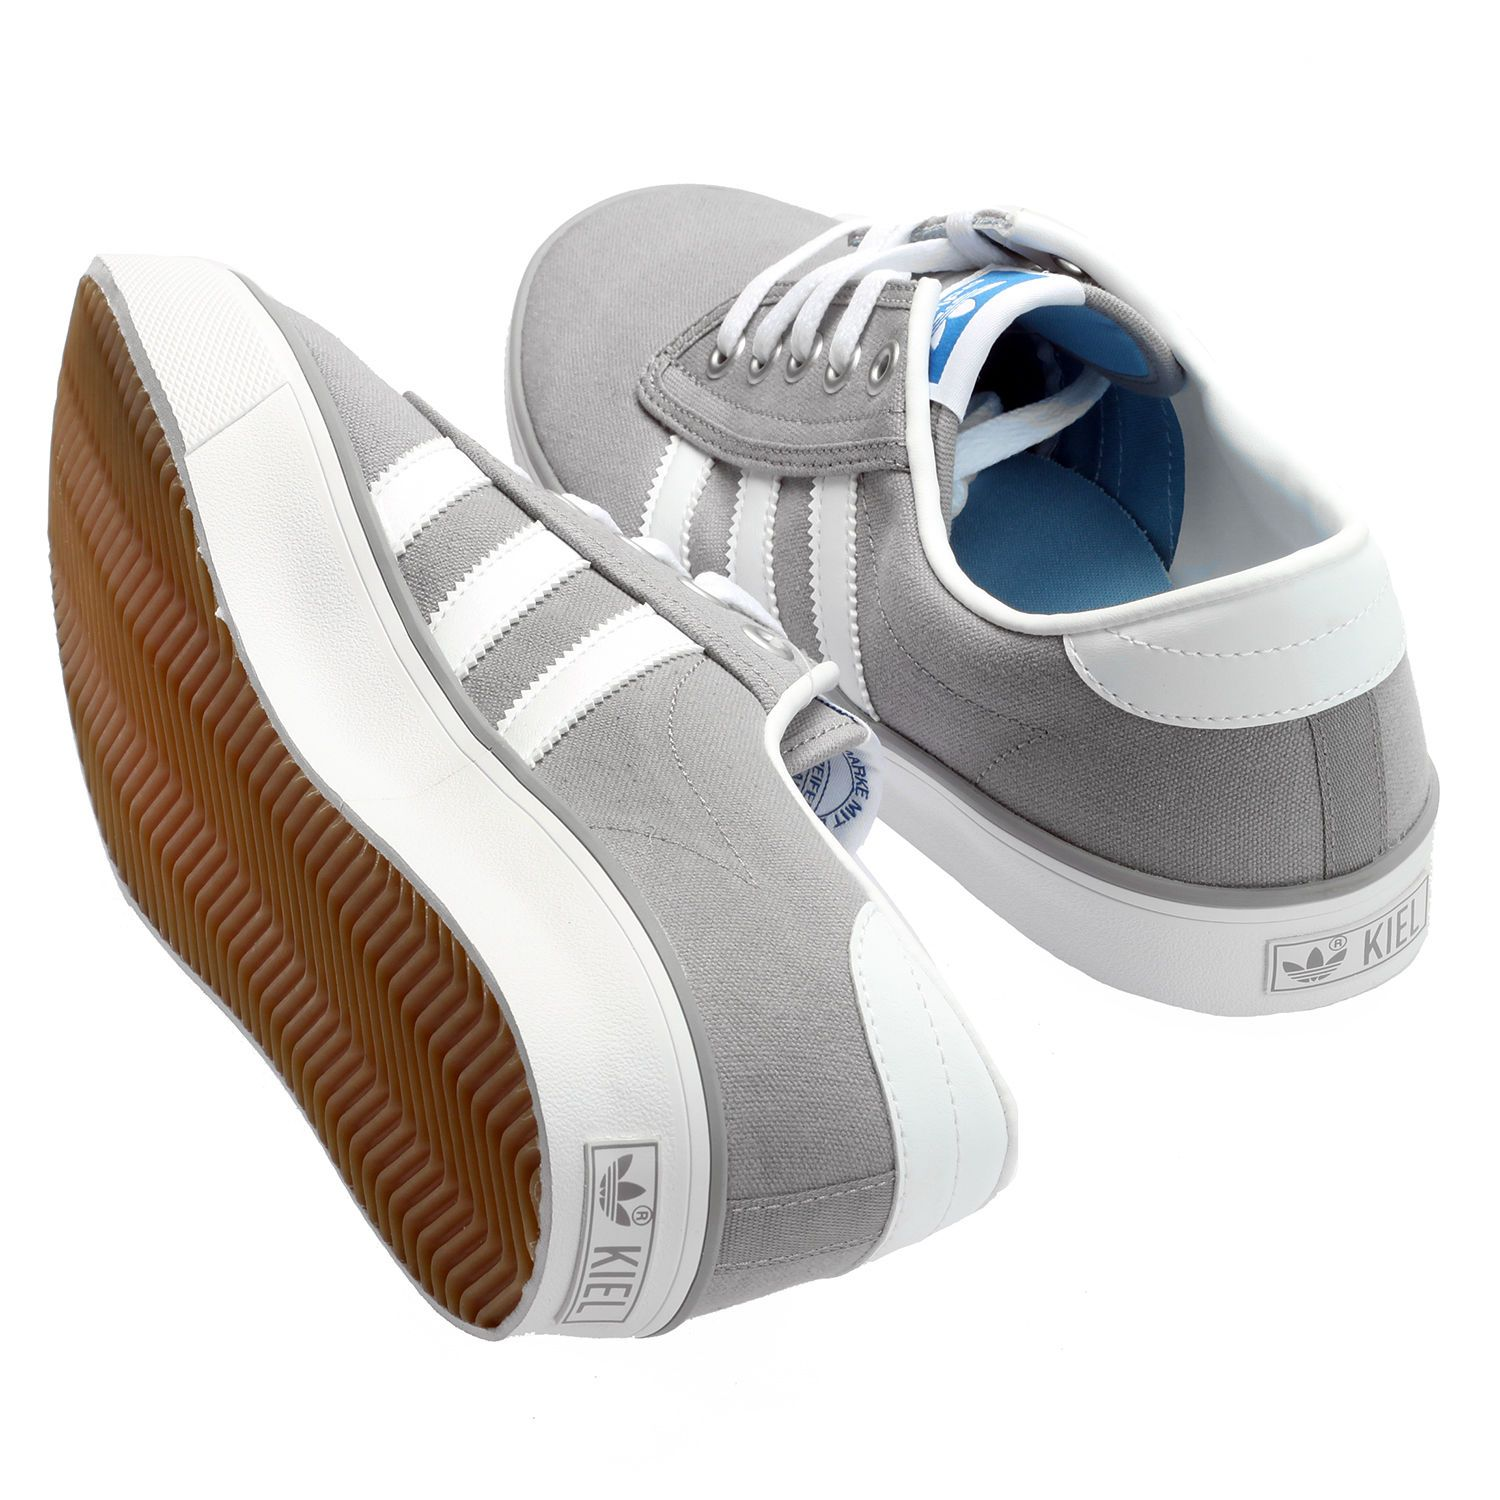 best loved 0854e 6616c adidas Kiel shoes  Grey and White M20322 BNIB